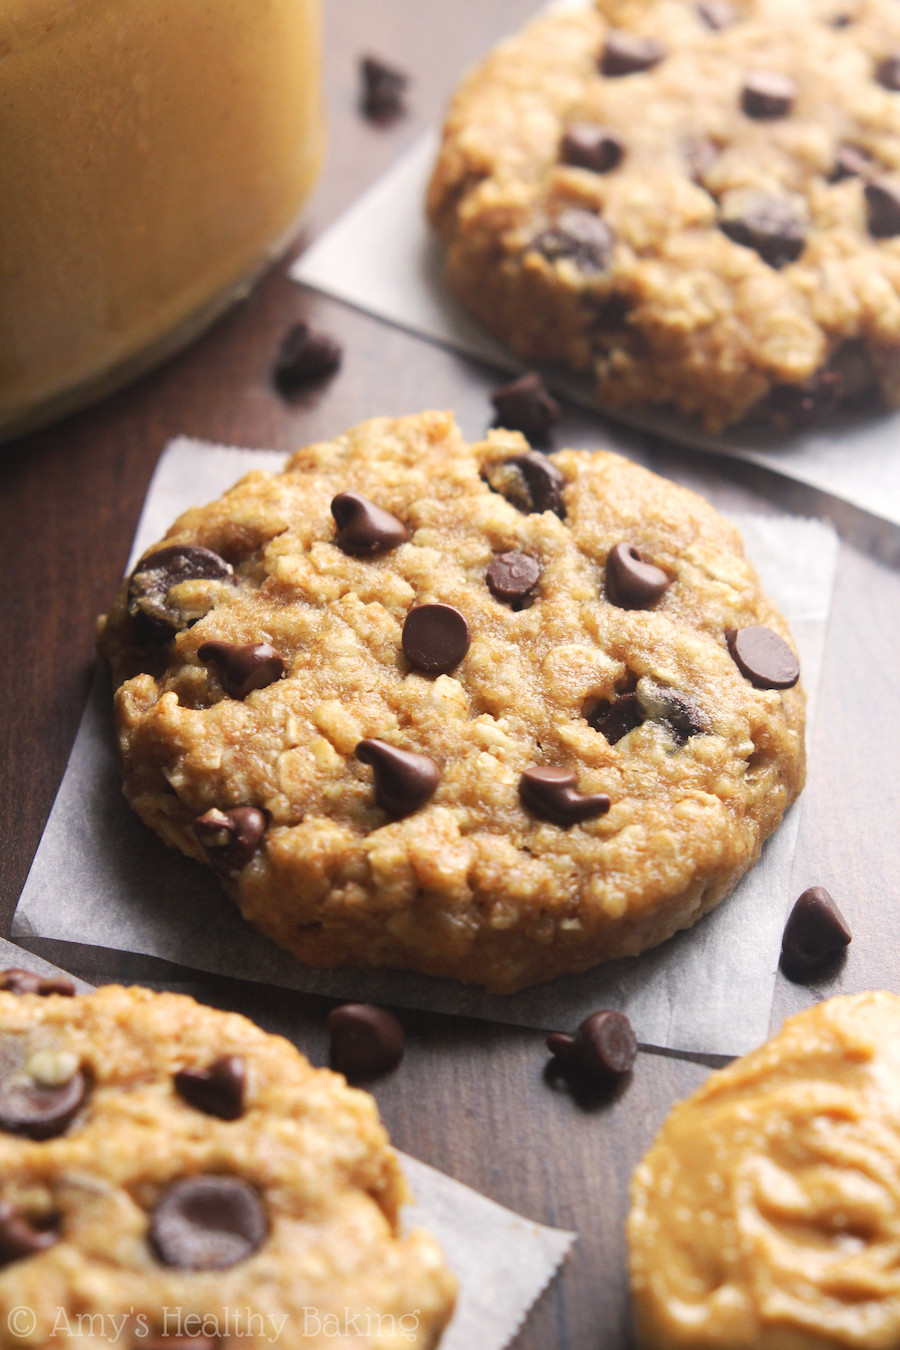 Are Chocolate Chip Cookies Healthy  Chocolate Chip Peanut Butter Oatmeal Cookies Recipe Video